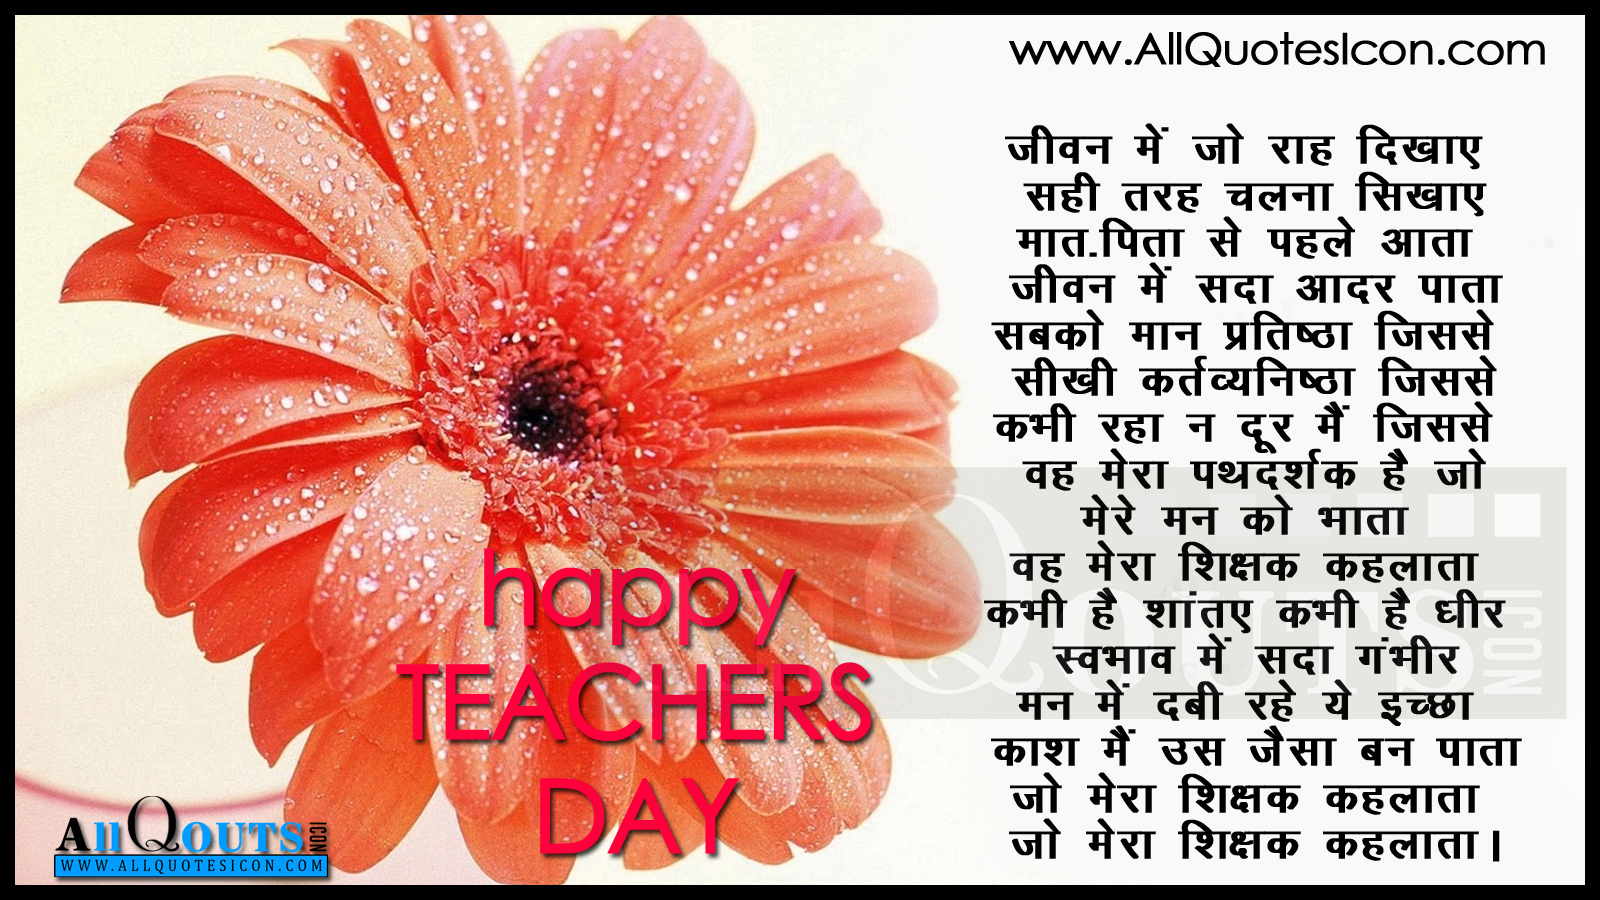 Teachers Day Messages In Hindi Hd Wallpapers Happy Teachers Day